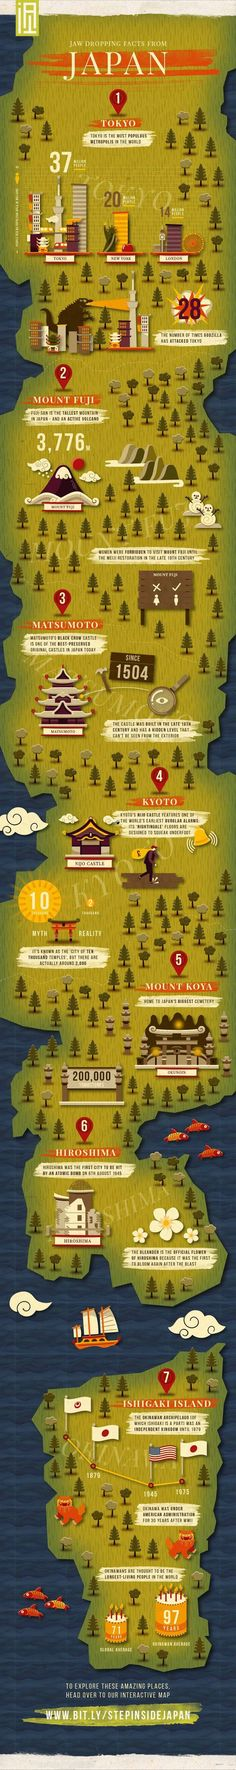 Awesome infographic featuring interesting facts about Japan. Great for the travel lovers out there.